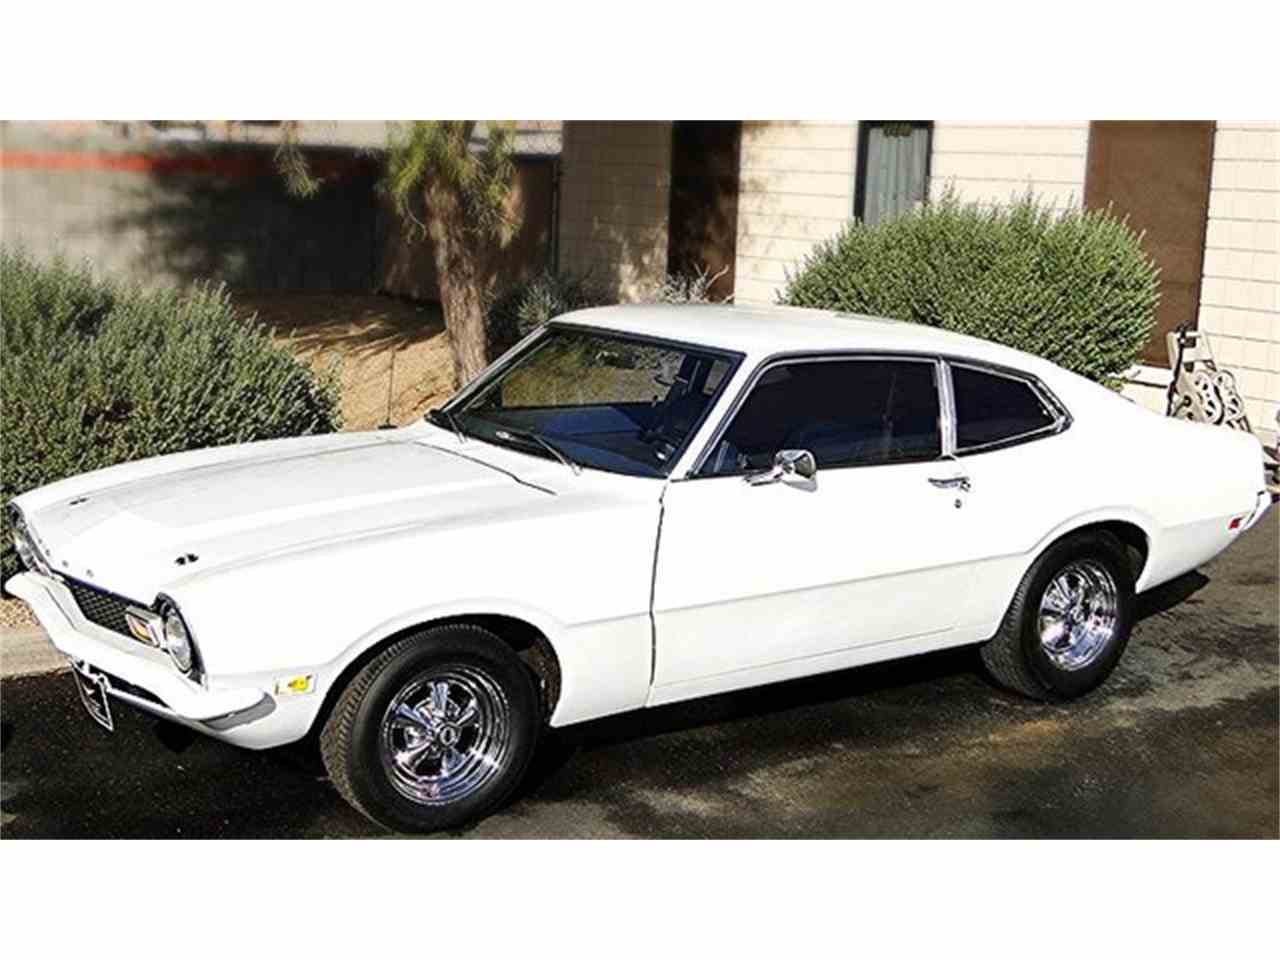 Arizona Cars For Sale >> 1976 Ford Maverick for Sale | ClassicCars.com | CC-641809